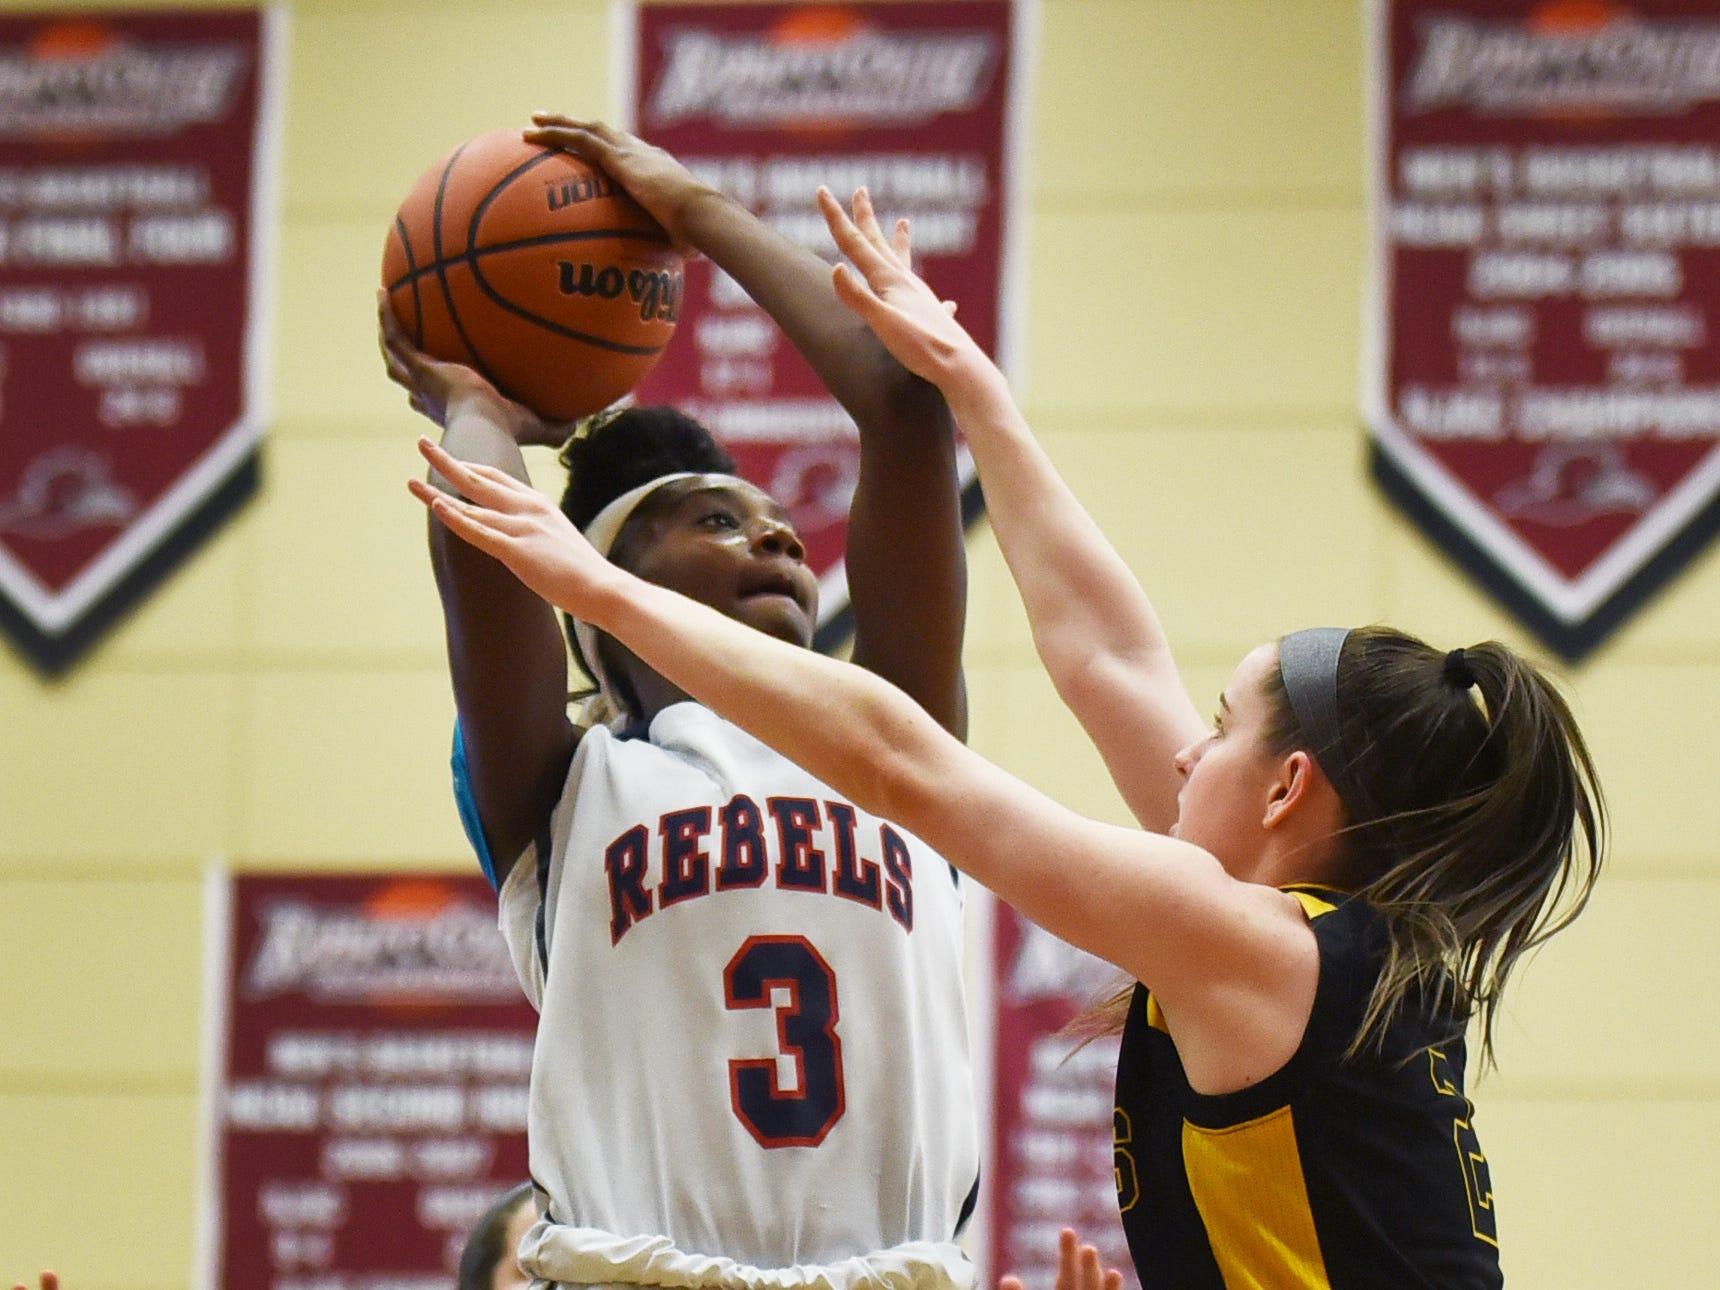 Jaida Patrick (no.3) of Saddle River Day makes a shot over Caitlin Conlon (no.2) of Paramus Catholic in the first half during the 2019 Bergen County girls basketball championship semifinal at Ramapo College in Mahwah on 02/10/19.